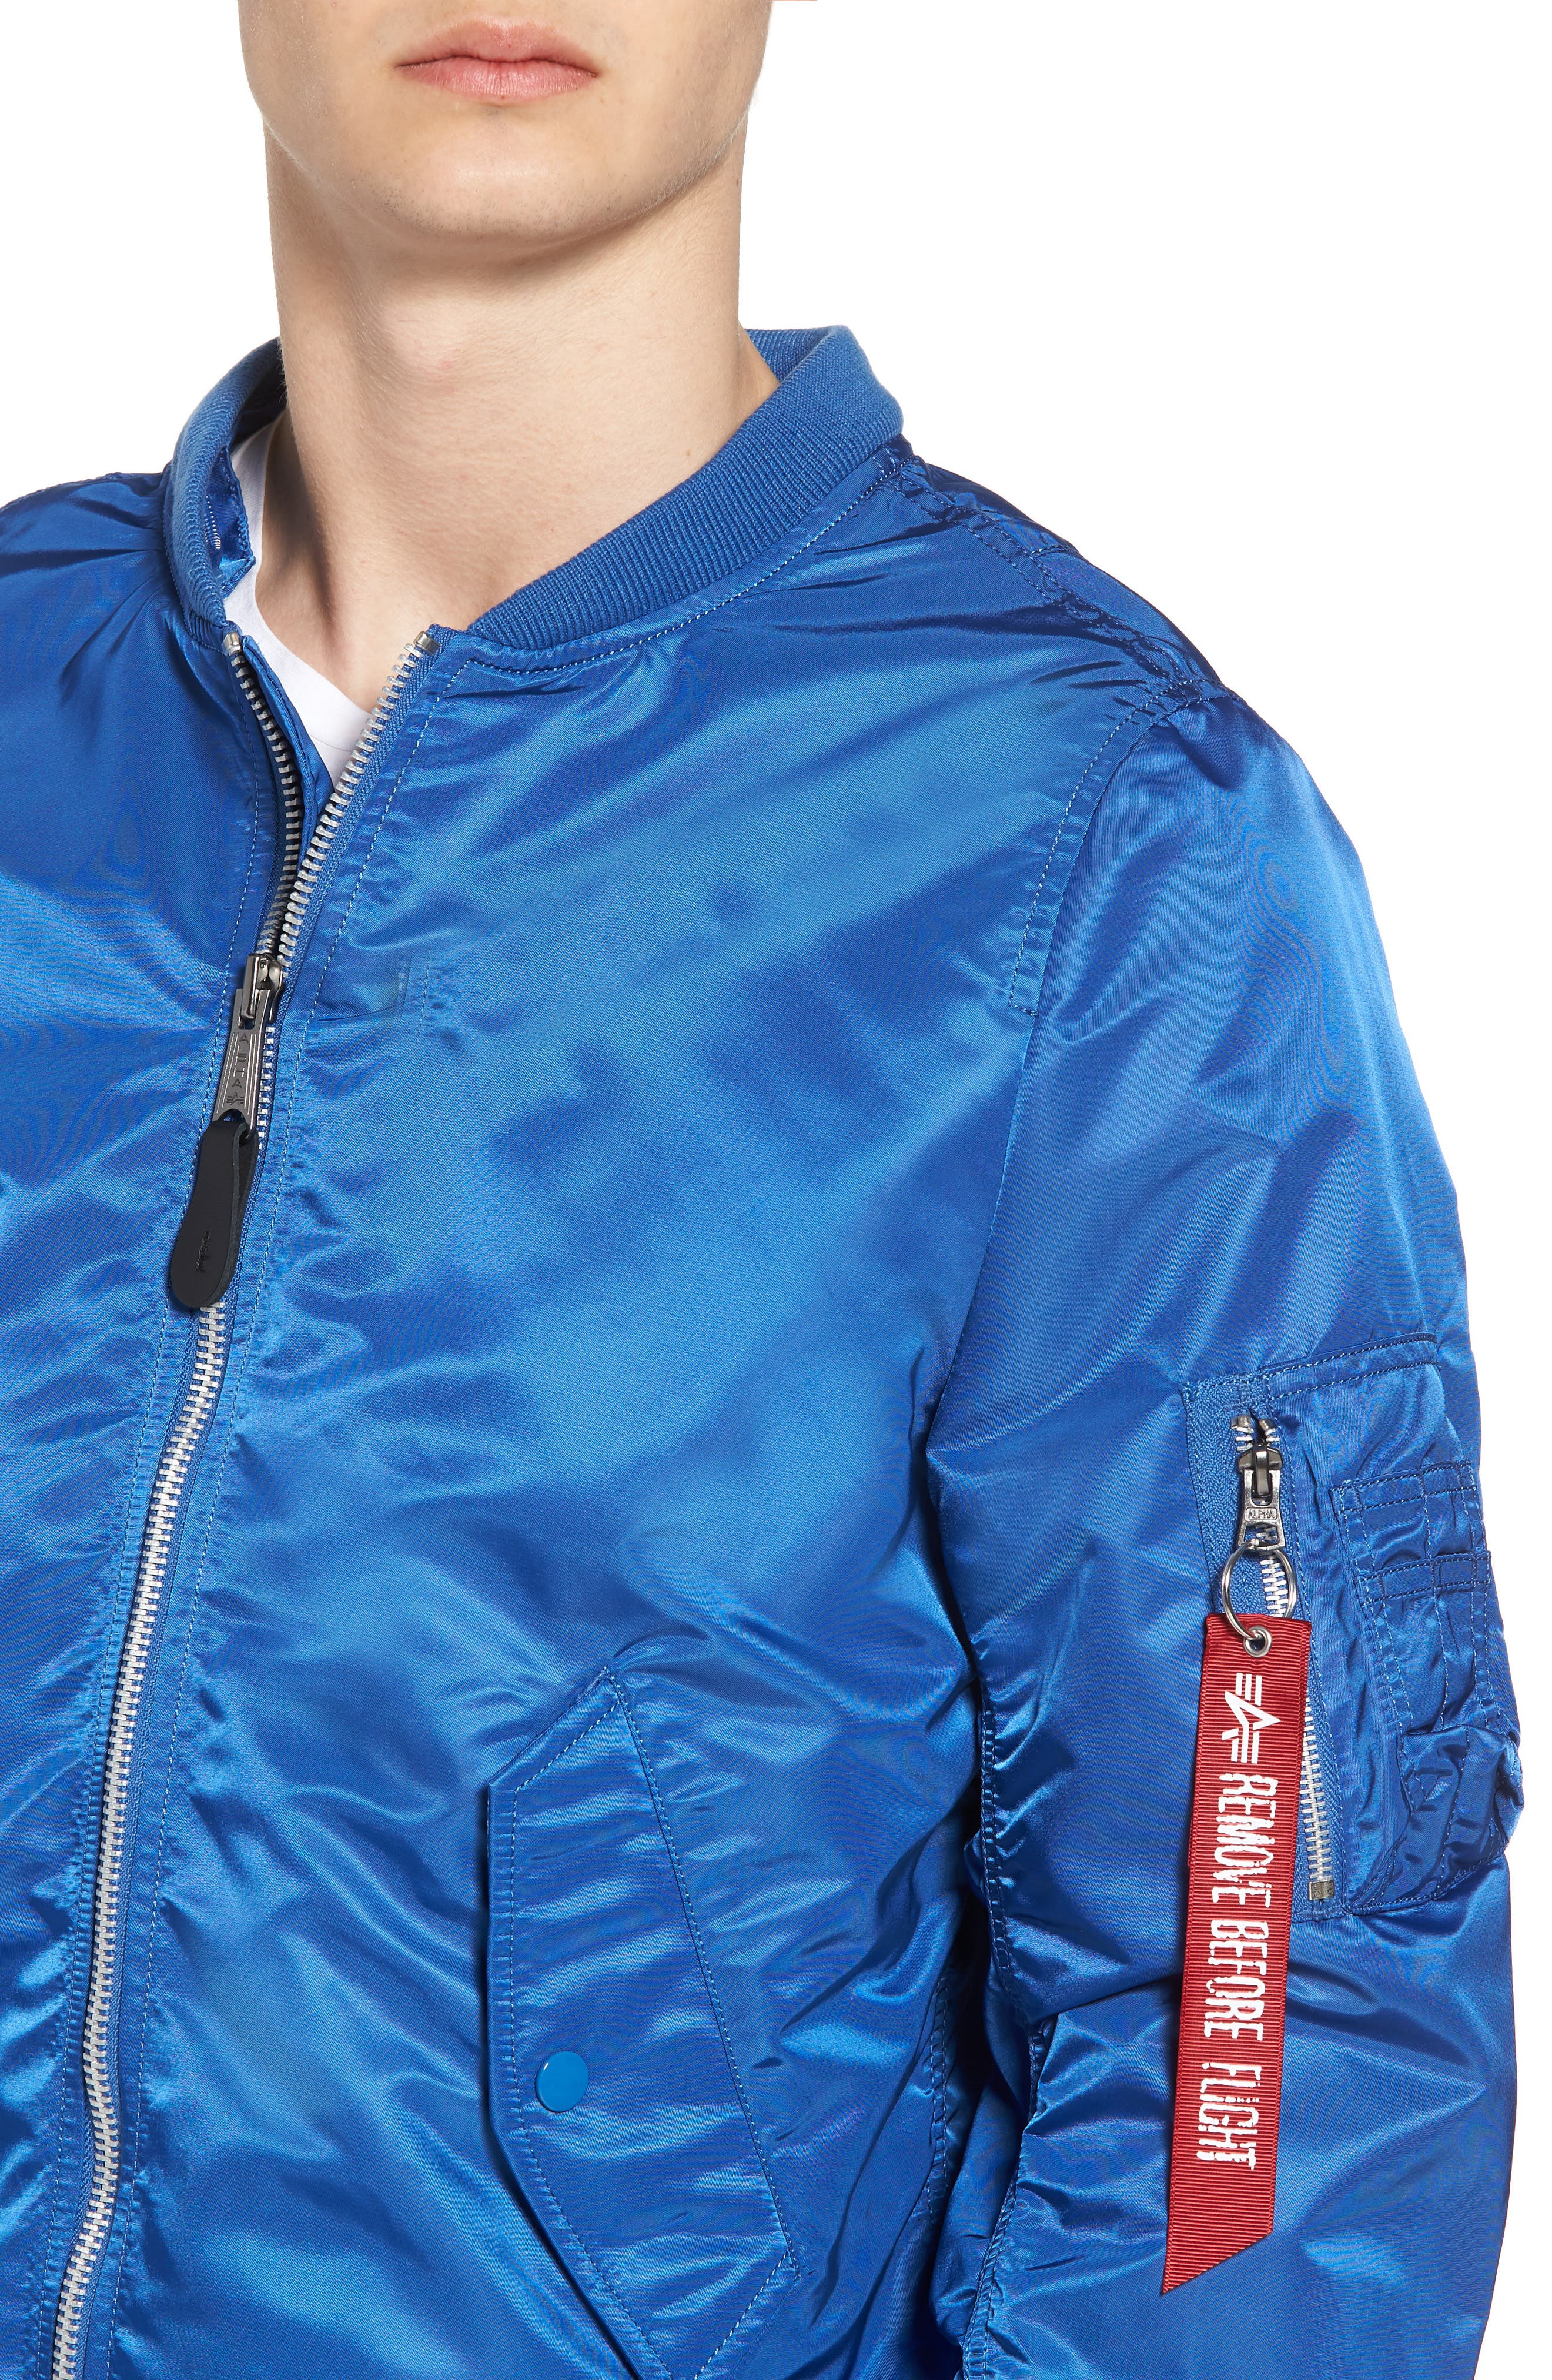 L-2B Natus Water Resistant Flight Jacket,                             Alternate thumbnail 4, color,                             Pacific Blue